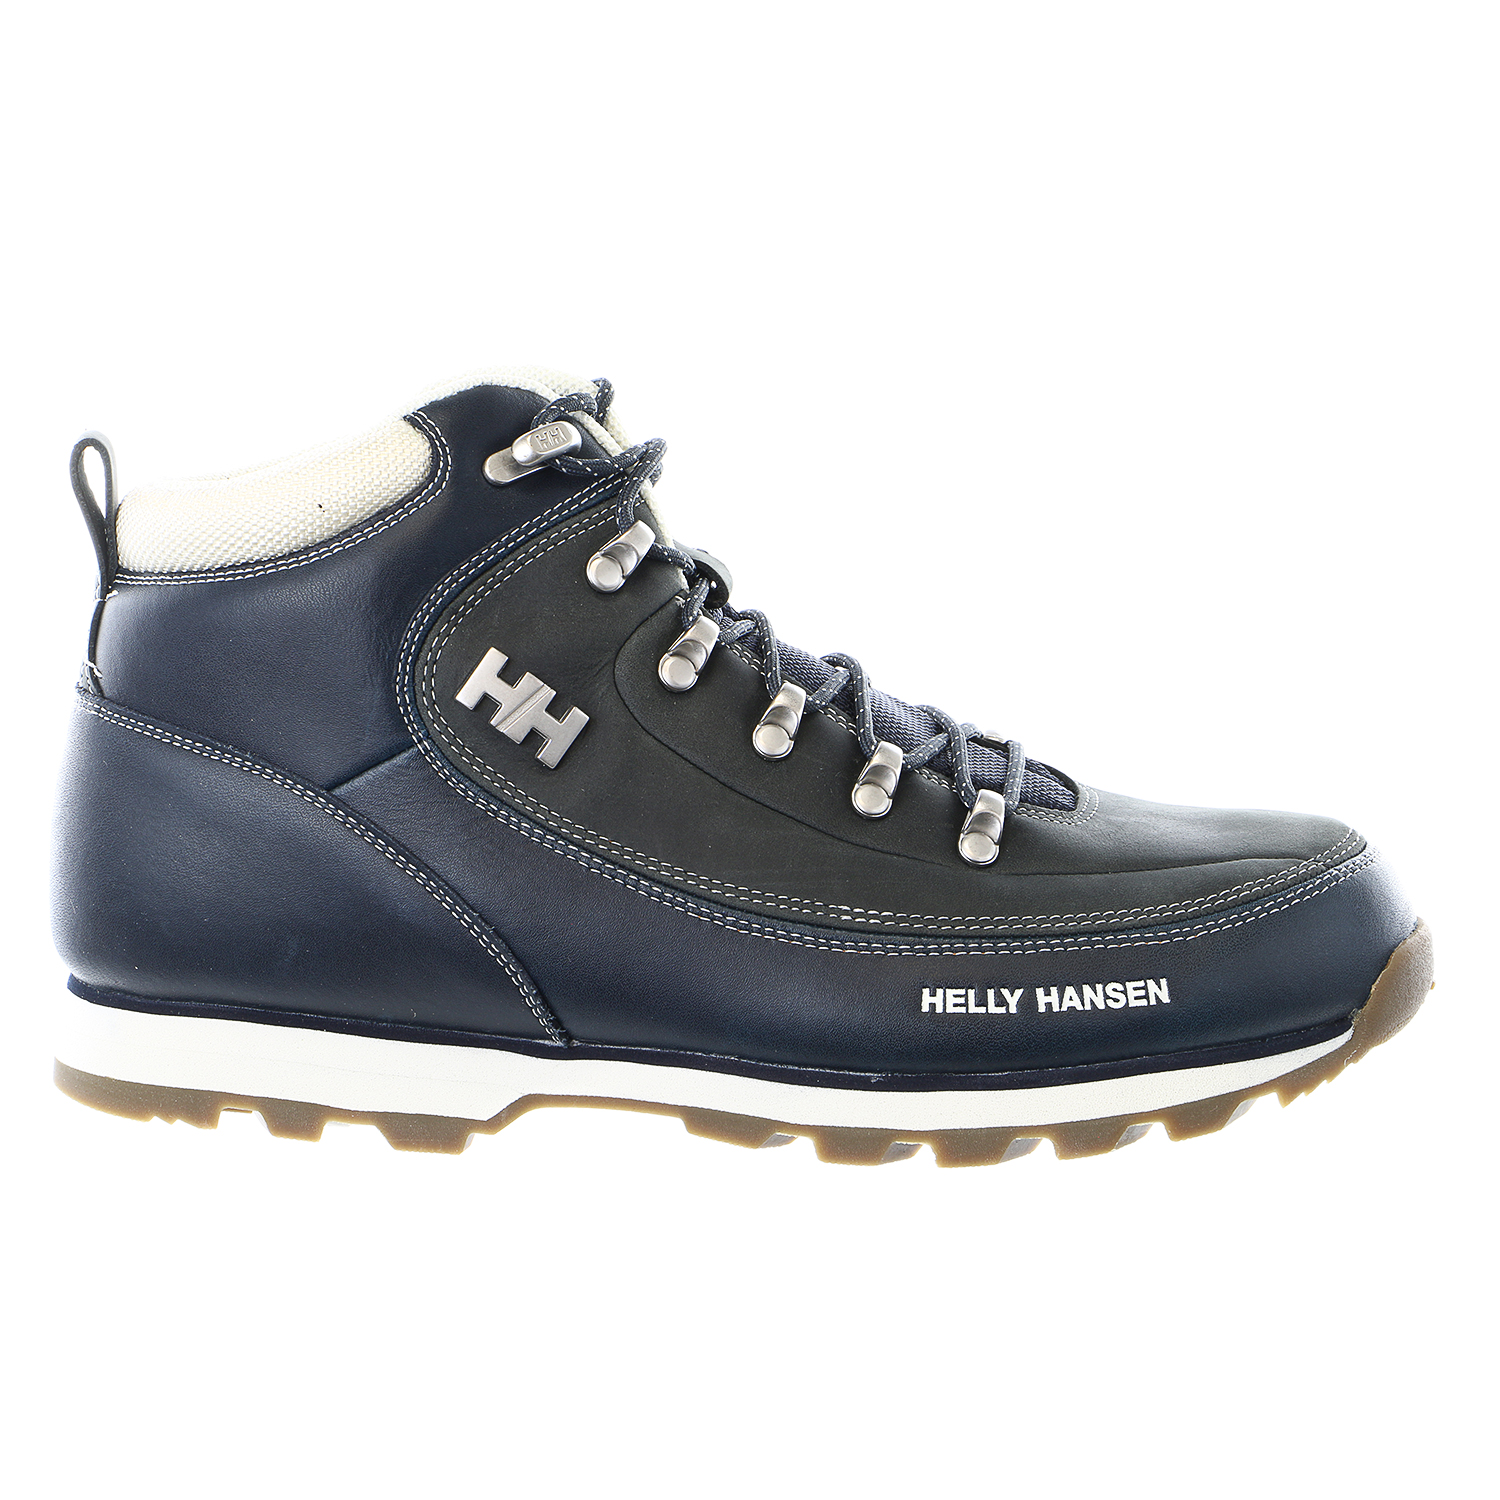 Helly Hansen The Forester Hiking Boot Shoe - Mens